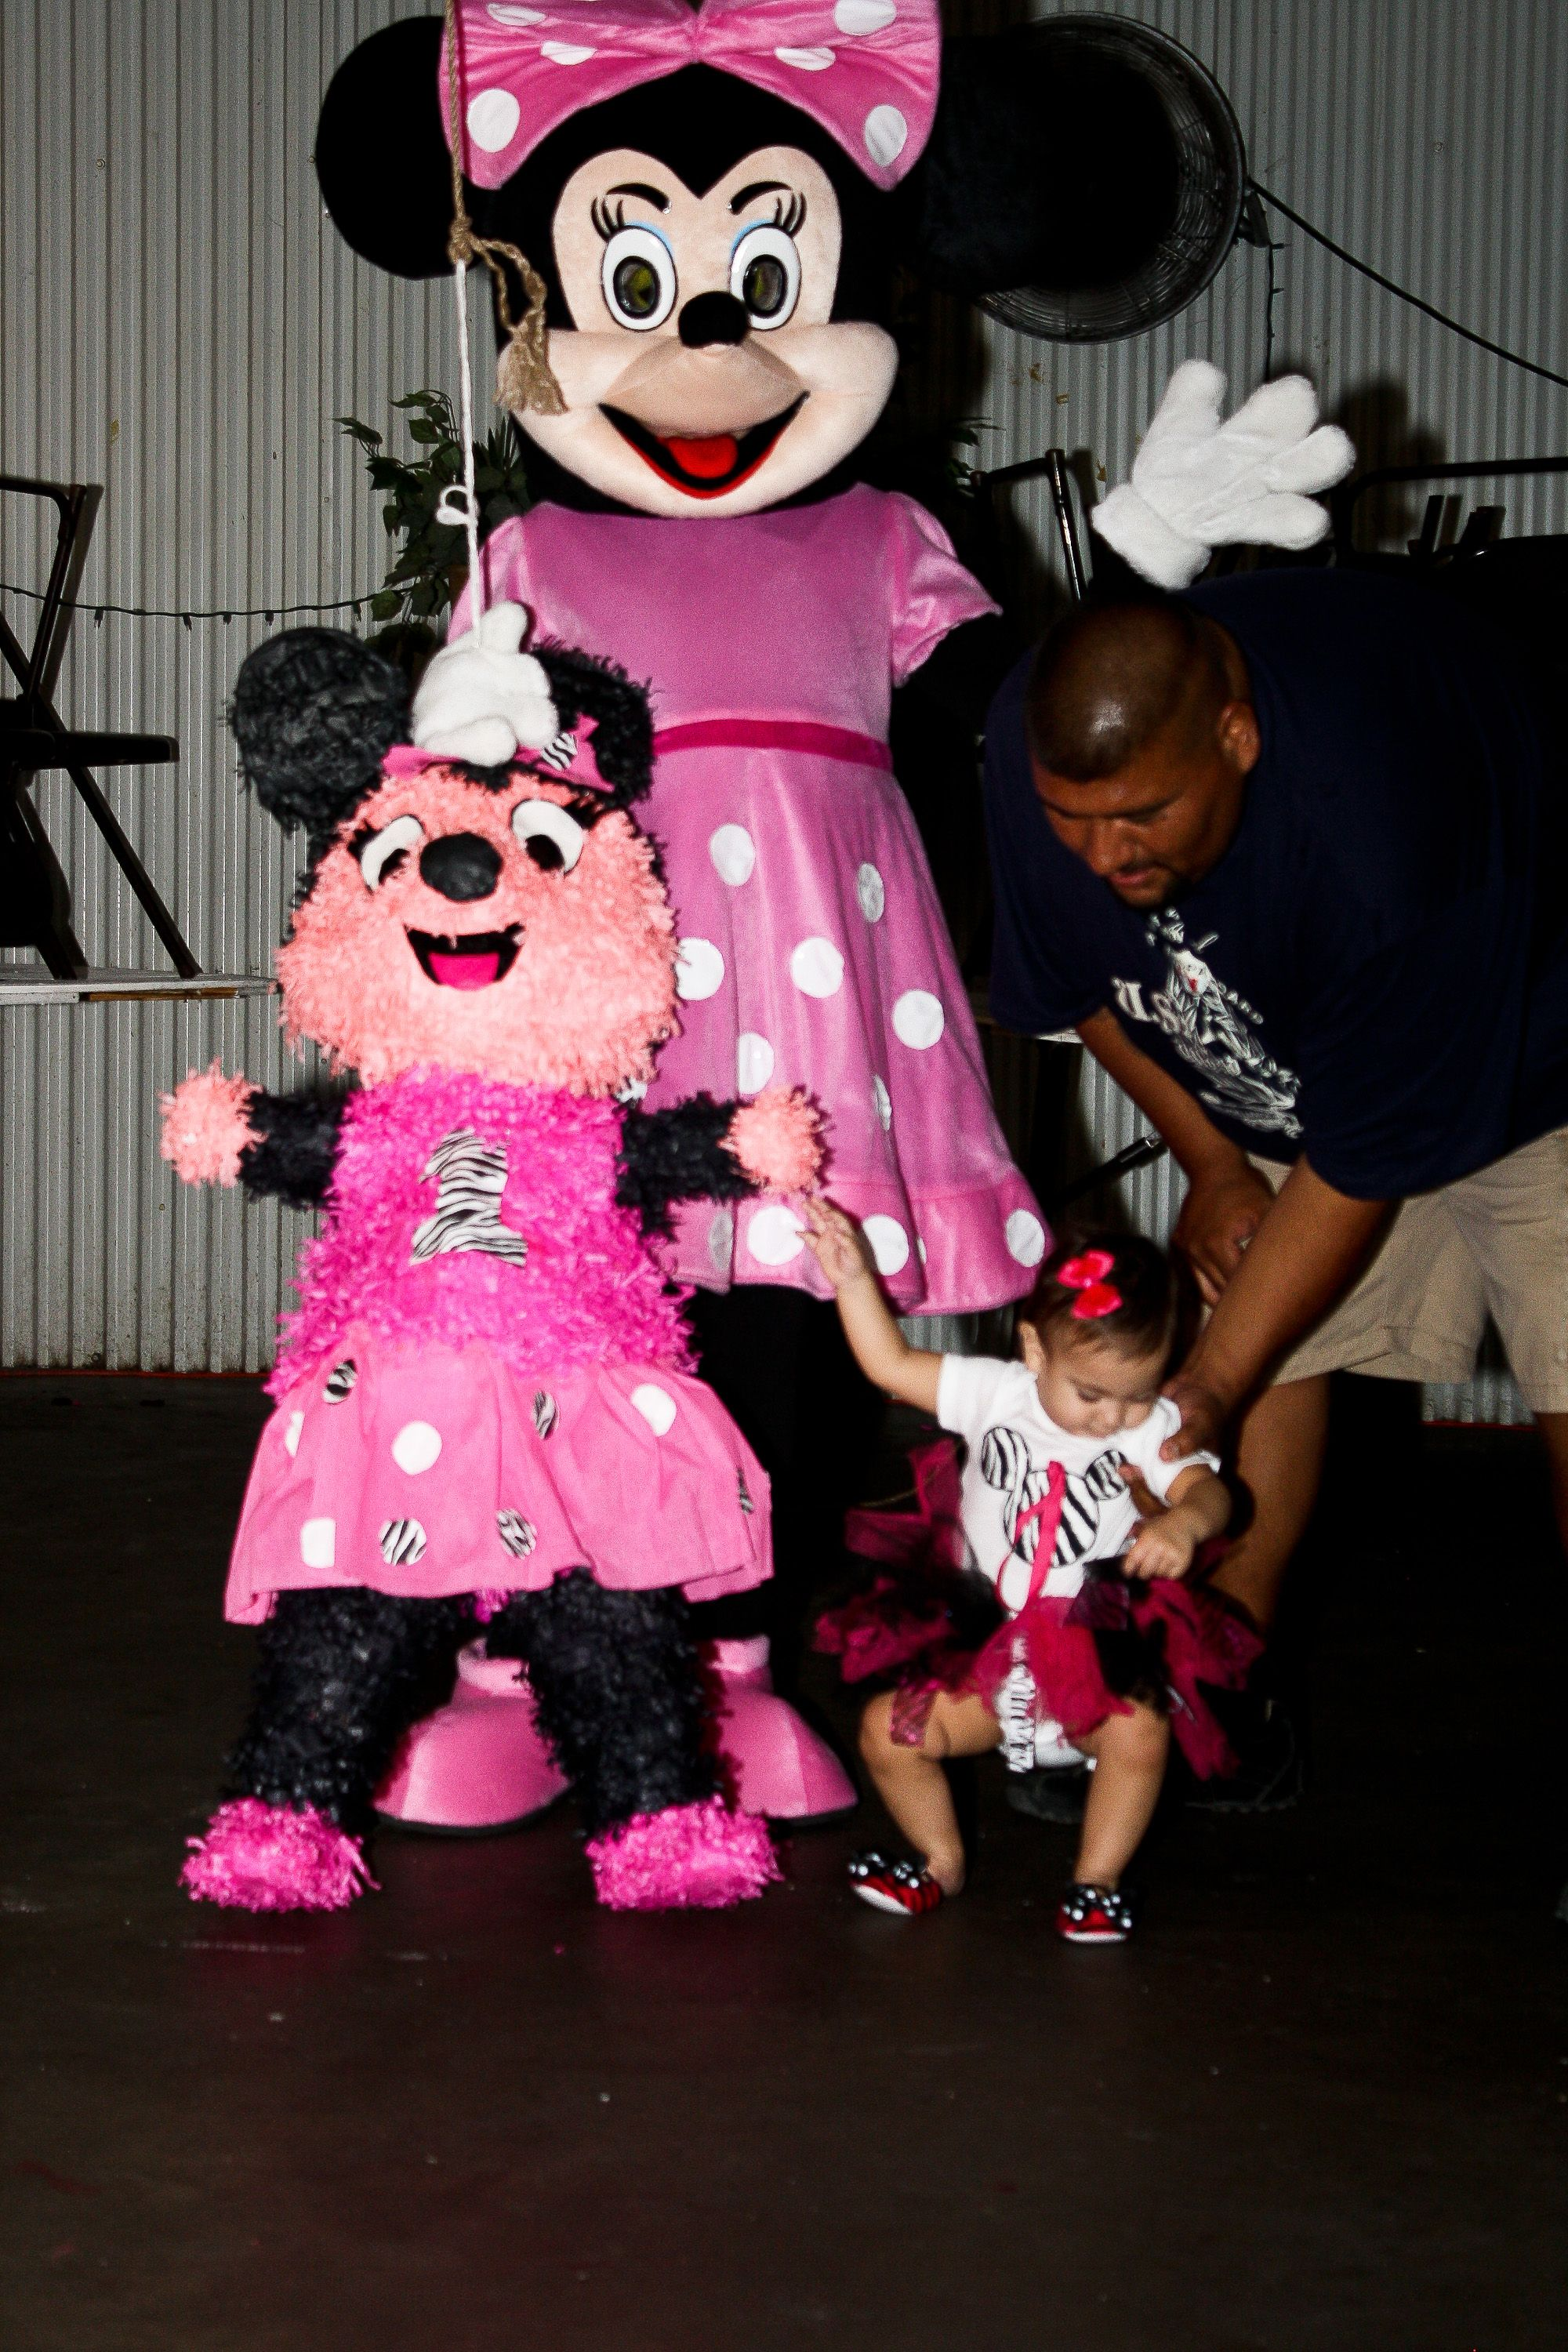 Minnie mouse with bday baby and minnie mouse pinata.